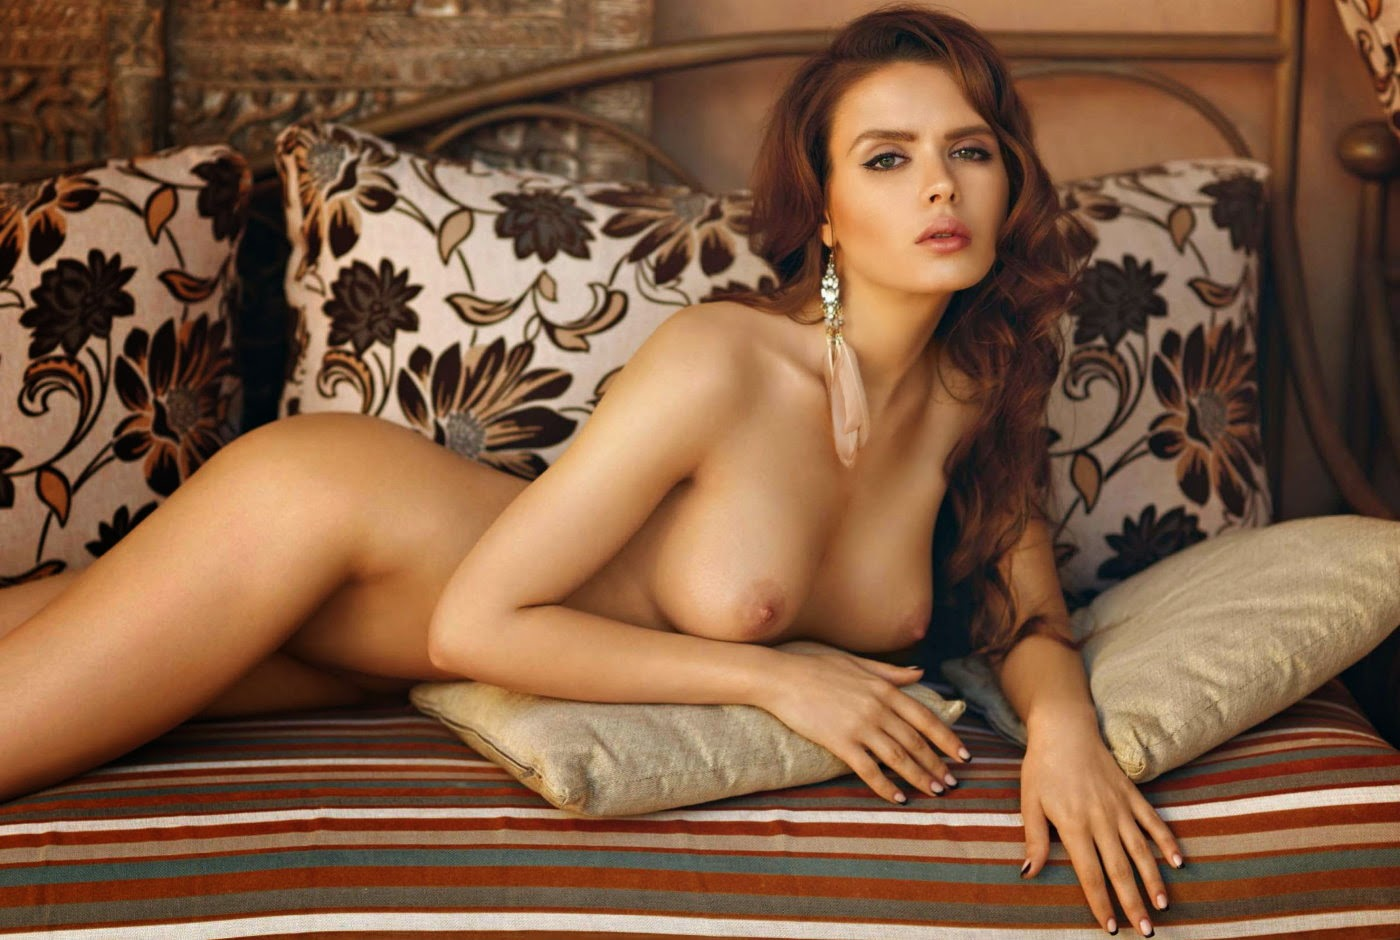 Nadin Svitalskaya – Get Real About Sex On The First Date